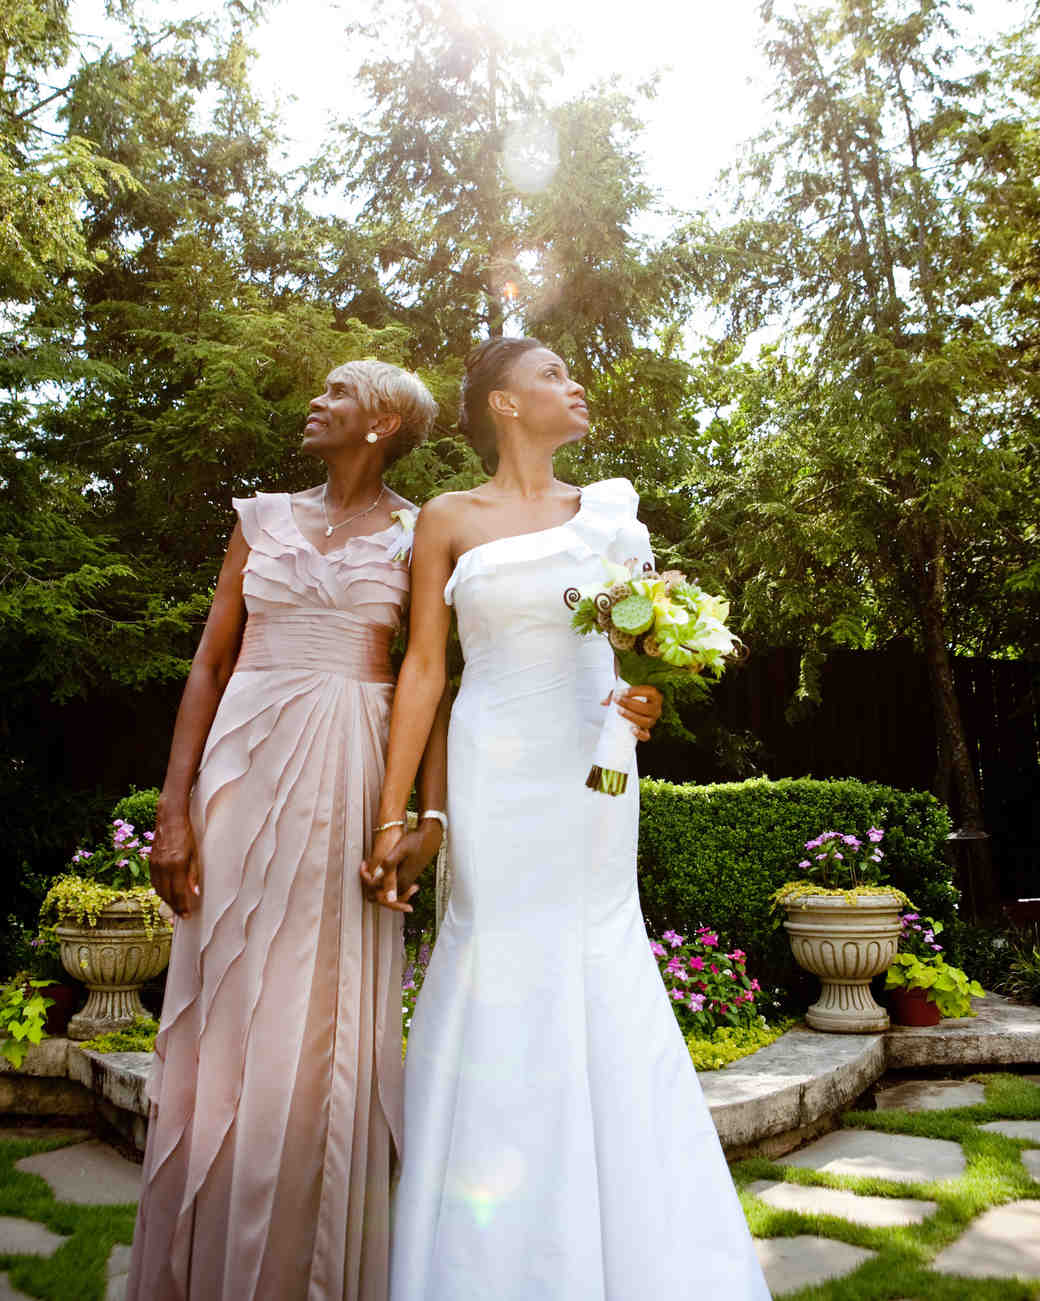 A Mother and Daughter Outside of the Wedding Venue